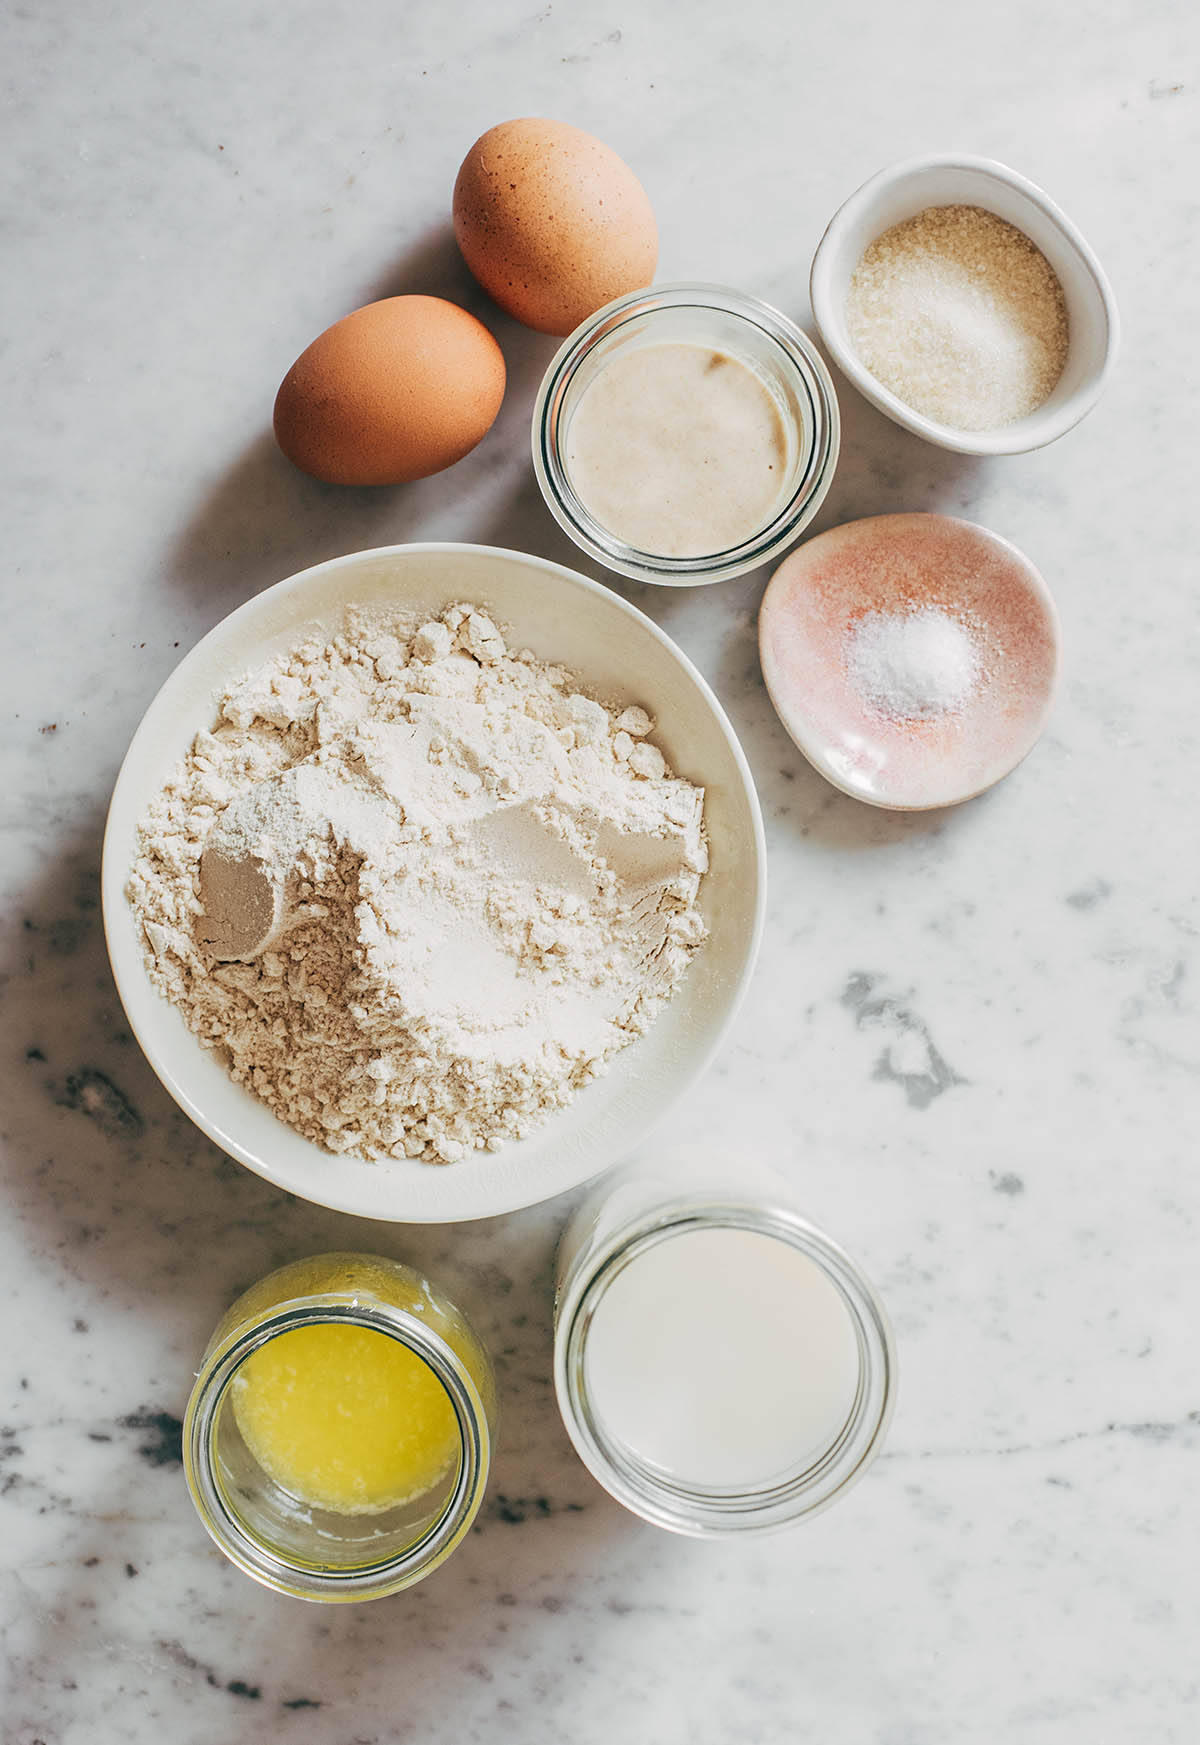 Assortment of baking ingredients in small bowls on a marble surface.